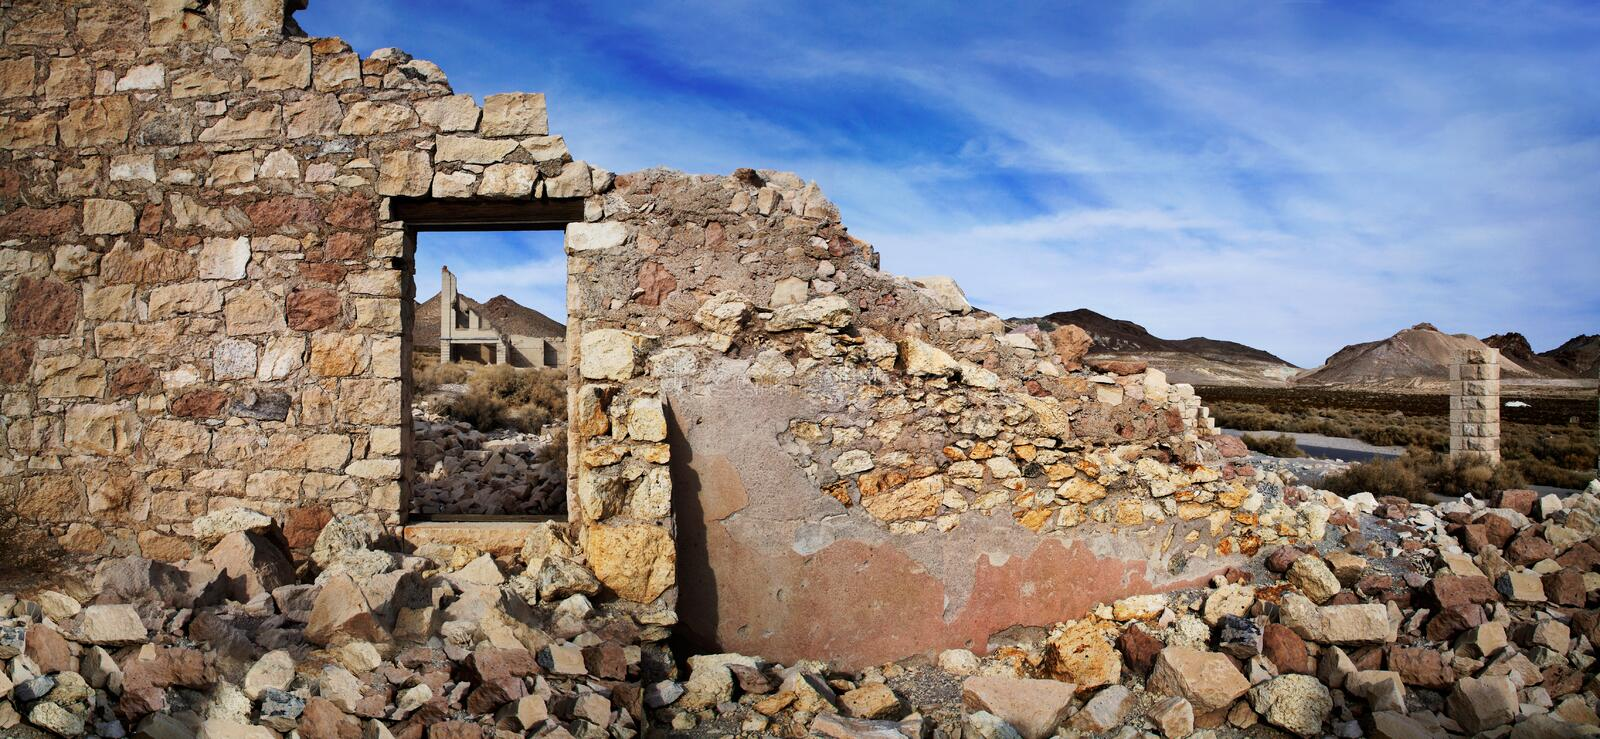 Rhyolite Ruins. The Wall And Window Of A Crumbling And Ruined Building At Rhyolite Nevada, An Abandoned Town Near Death Valley California, USA royalty free stock photos